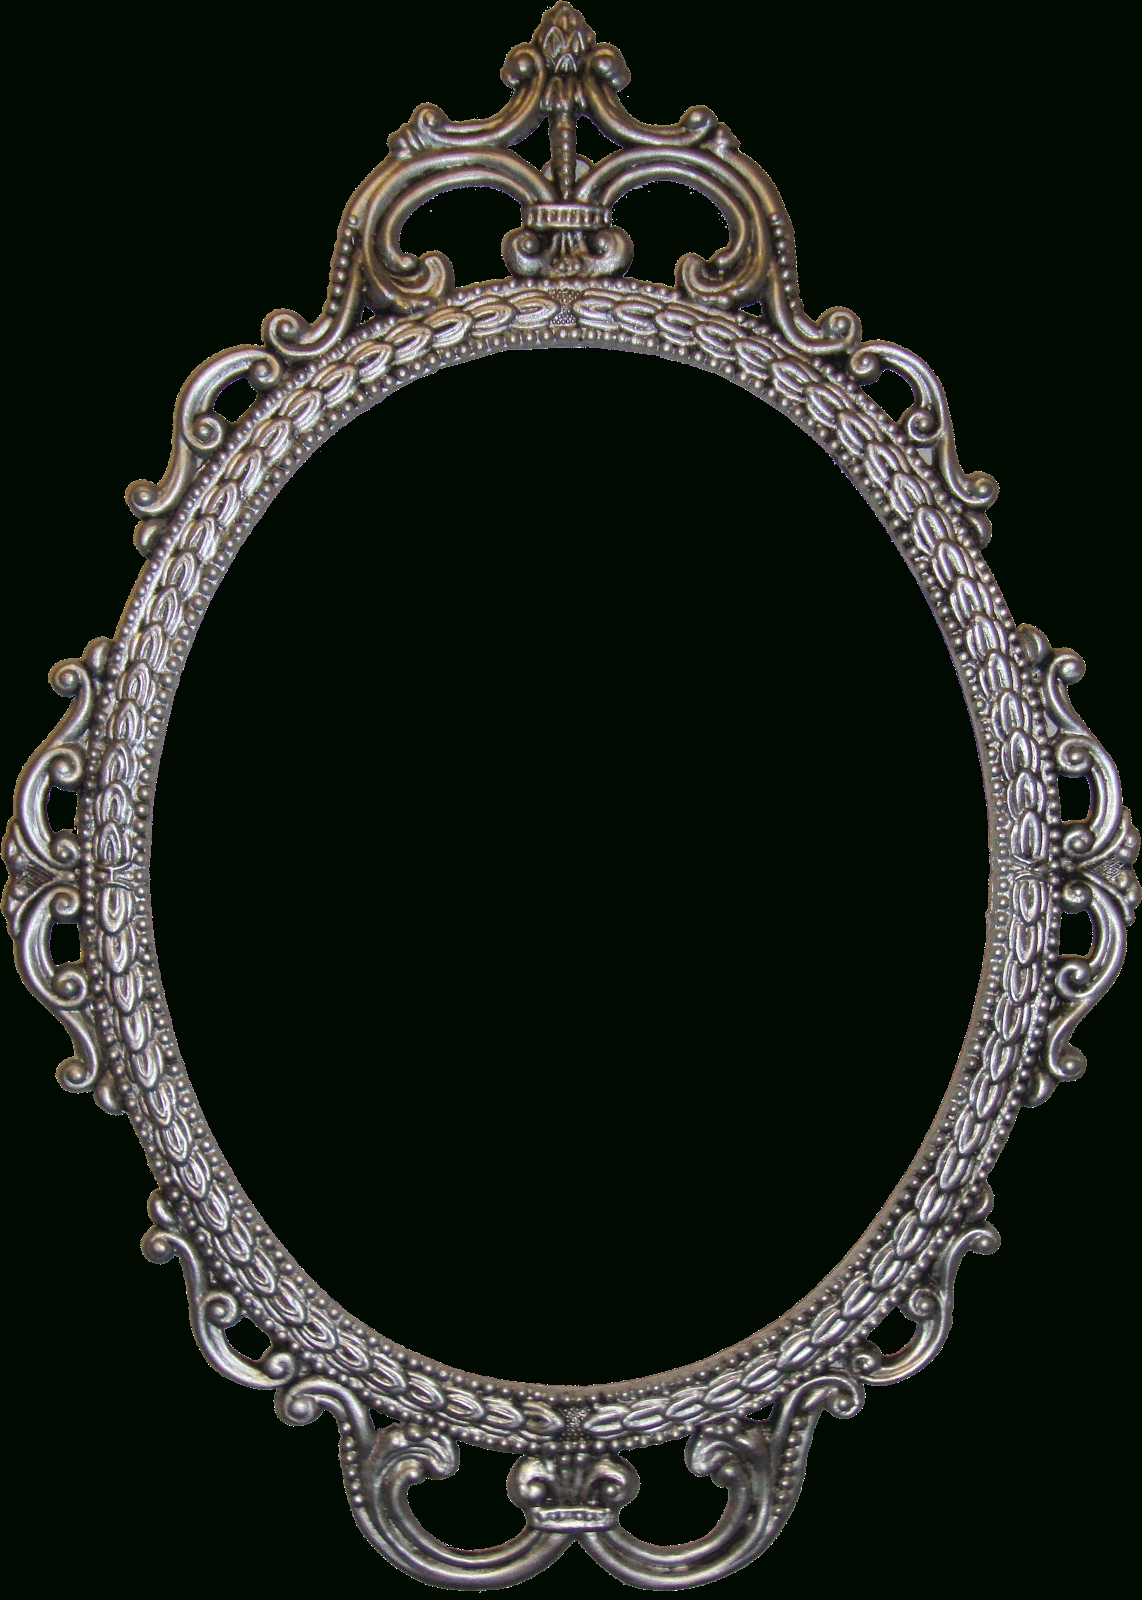 Accessories: Extraordinary Accessories For Girl Bedroom Wall Inside Ornate Oval Mirrors (Image 1 of 20)